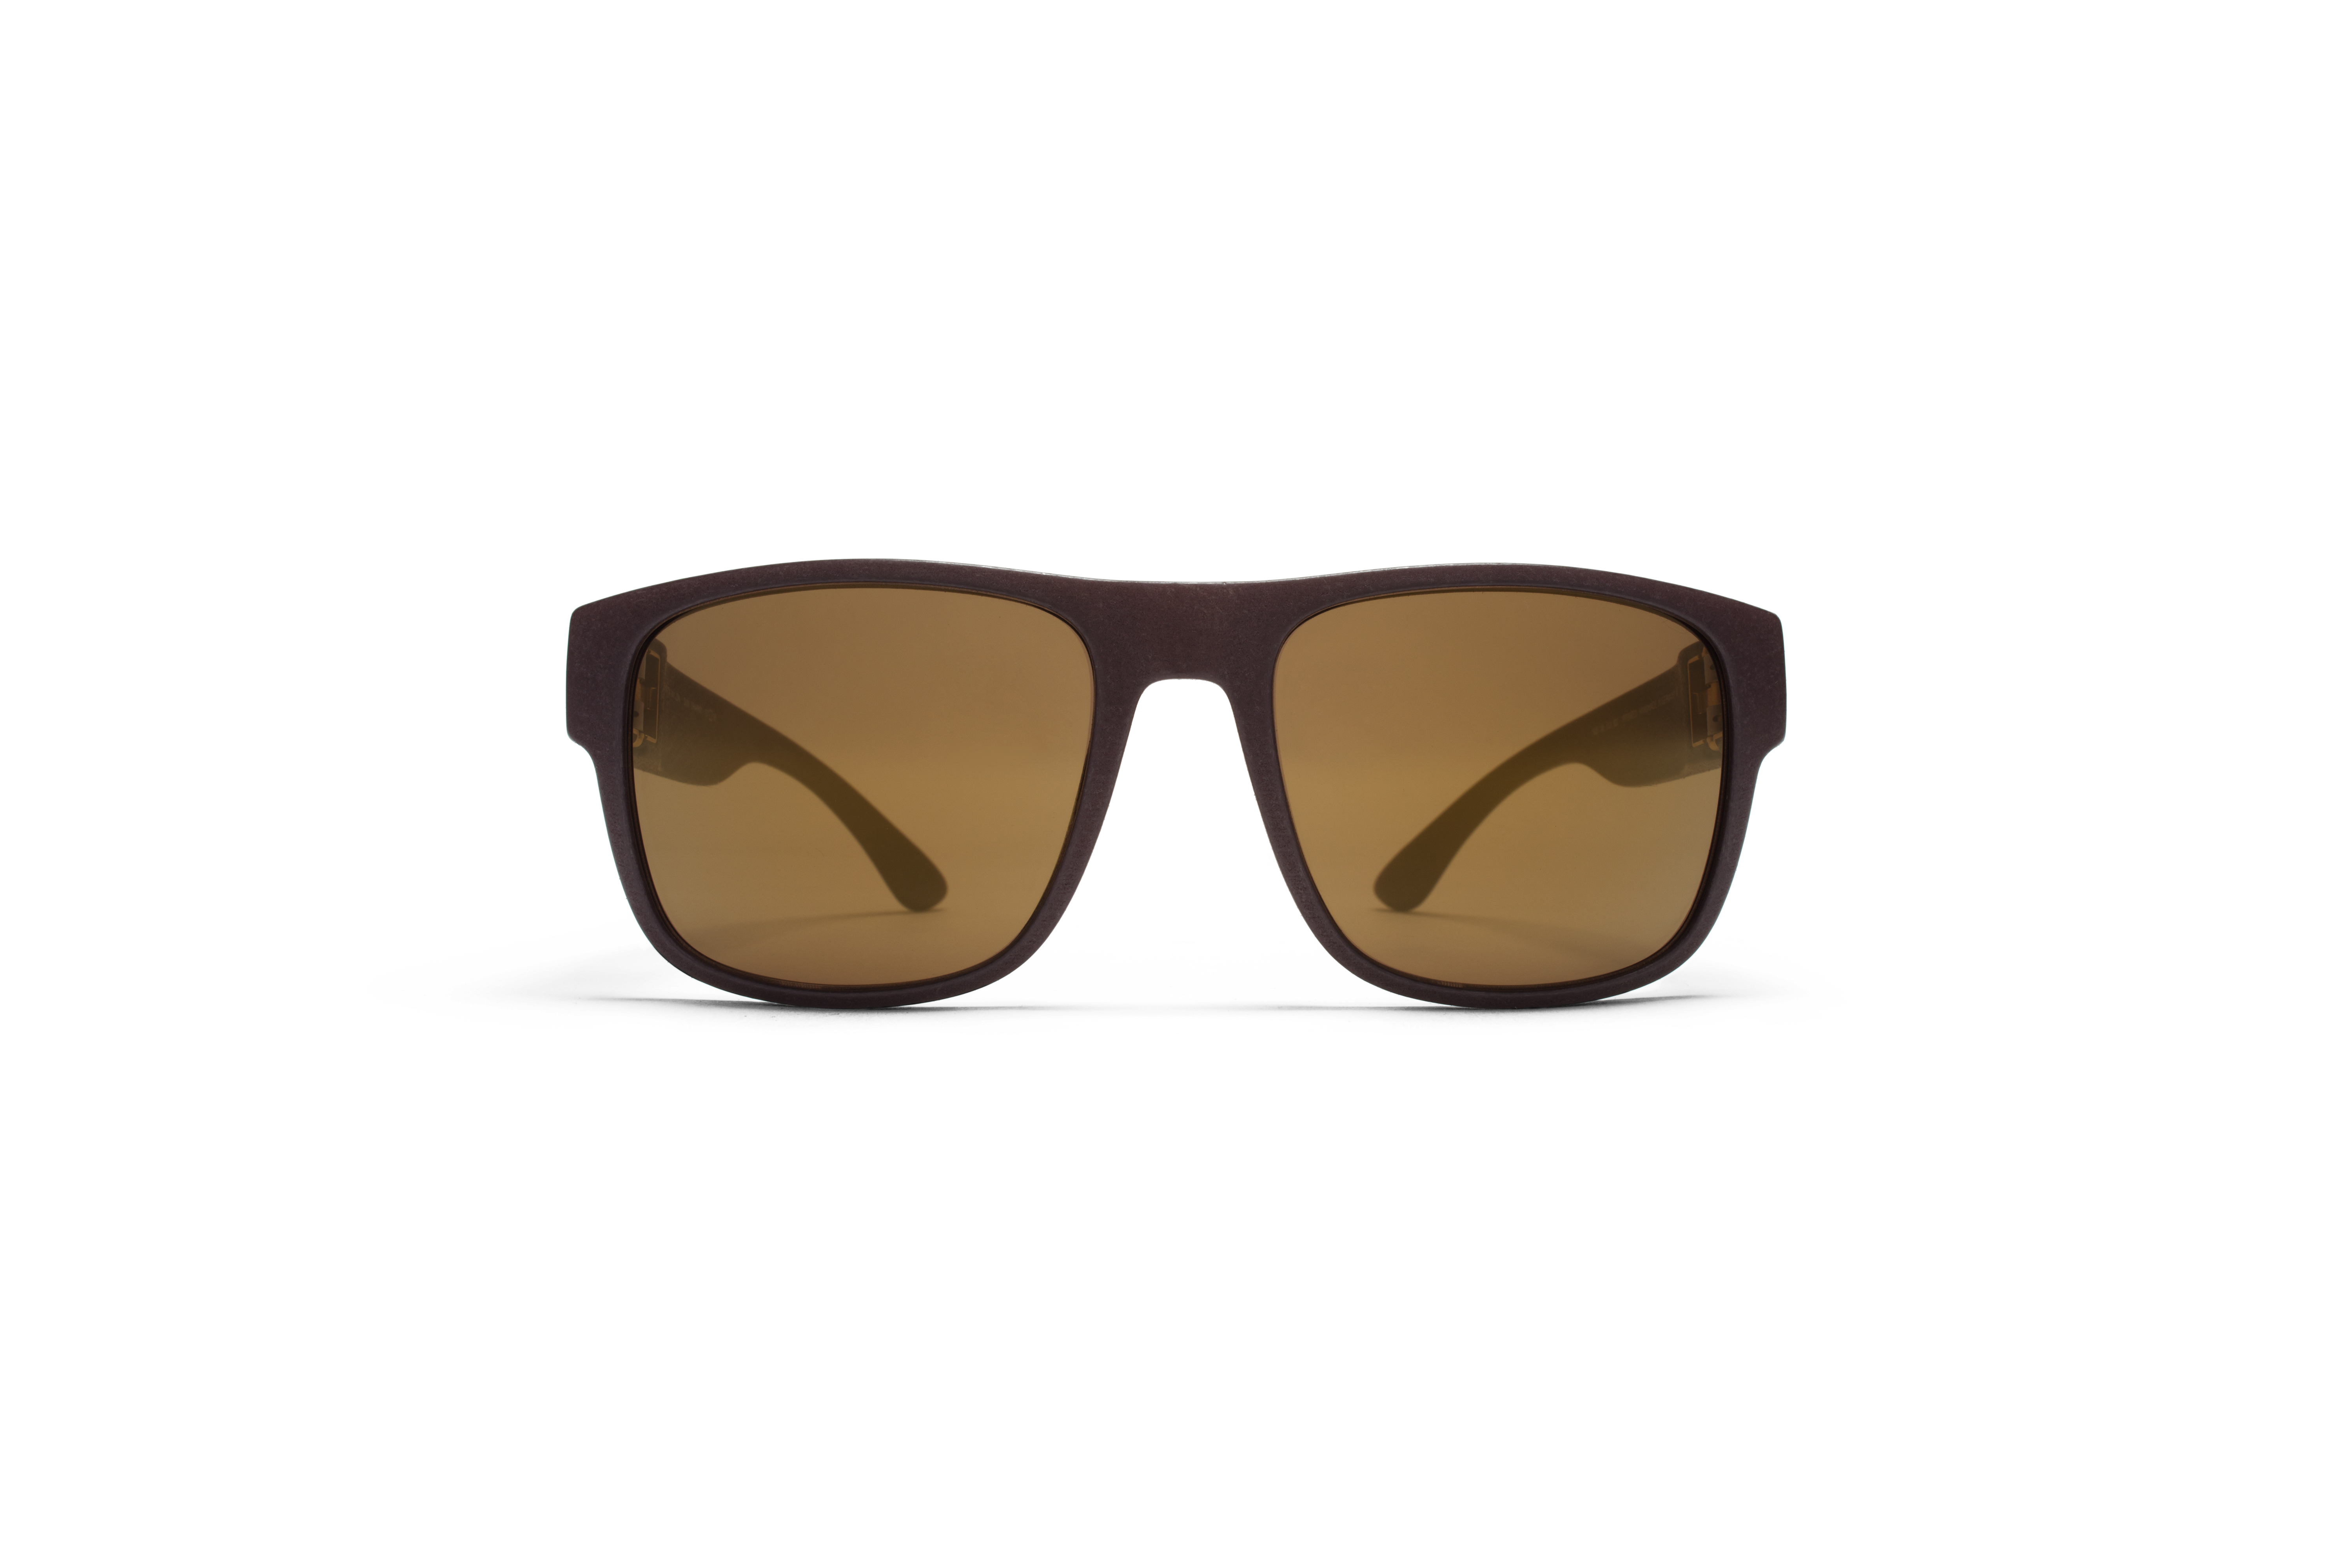 MYKITA Mylon Sun Sharky Md22 Ebony Brown Cocoa Fla562b6e1ba7115